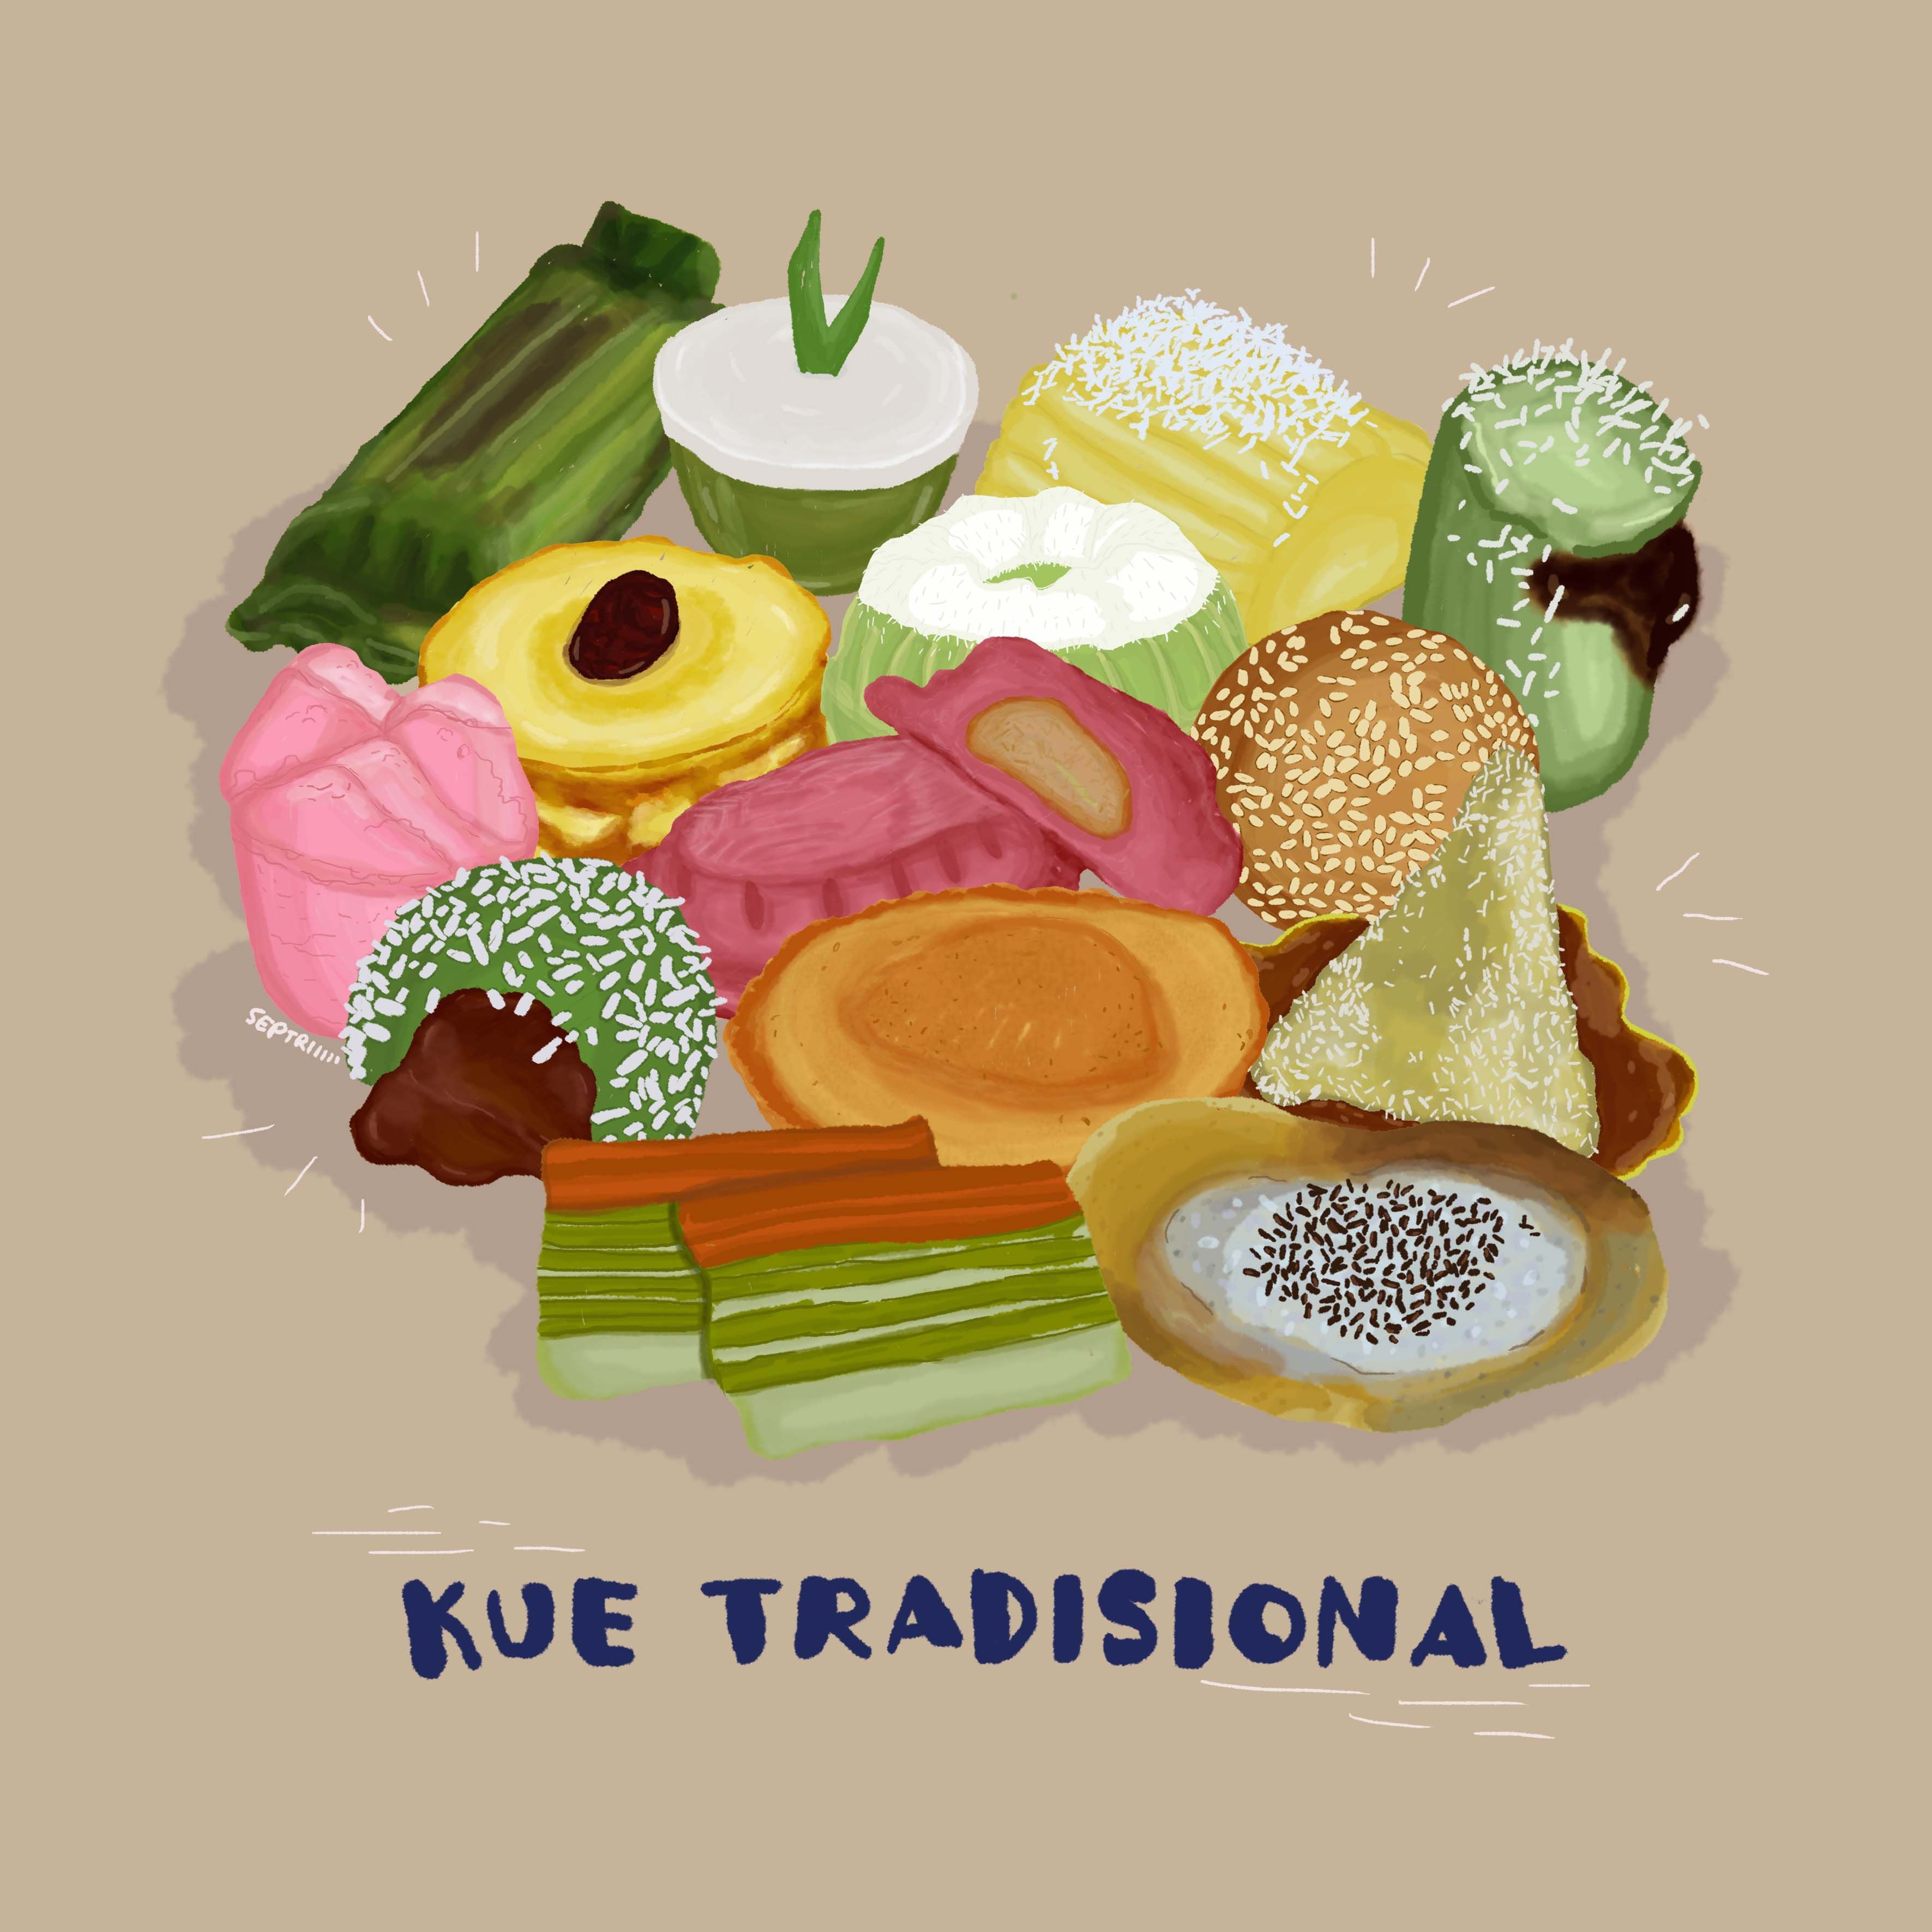 Cakes Snacks Traditional From Indonesia Food Artwork Food Drawing Food Illustration Art